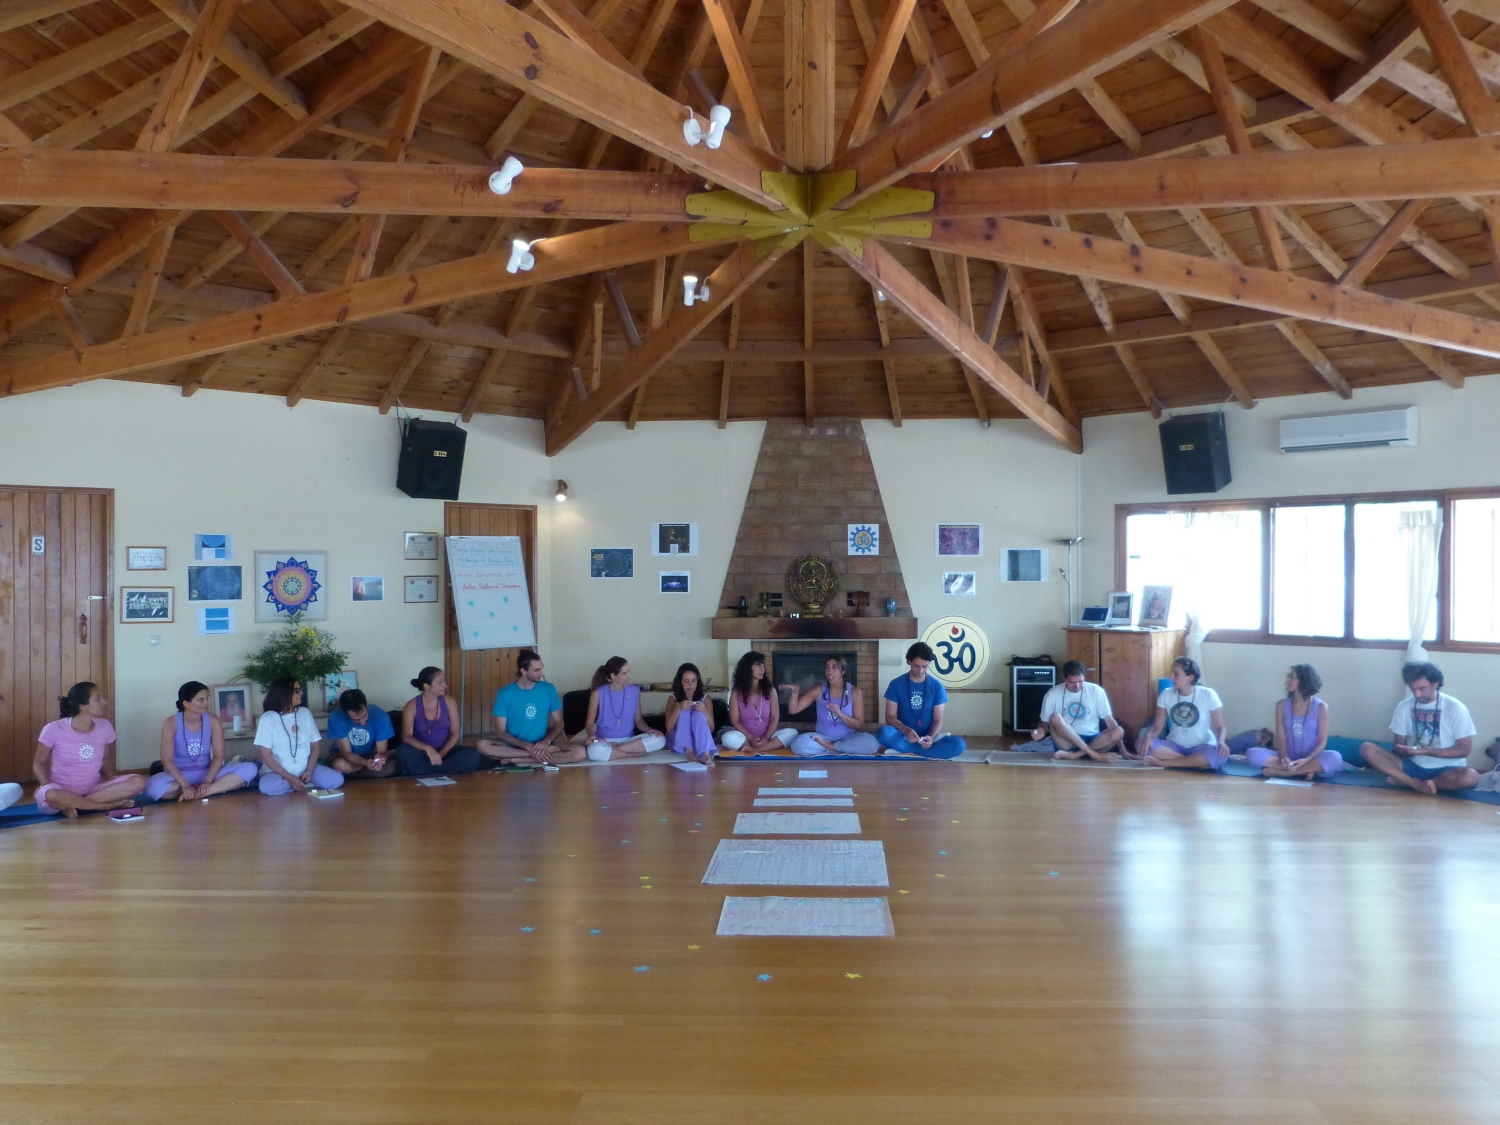 Semana Intensiva do Yoga - 2014 - Quinta da Calma, Algarve